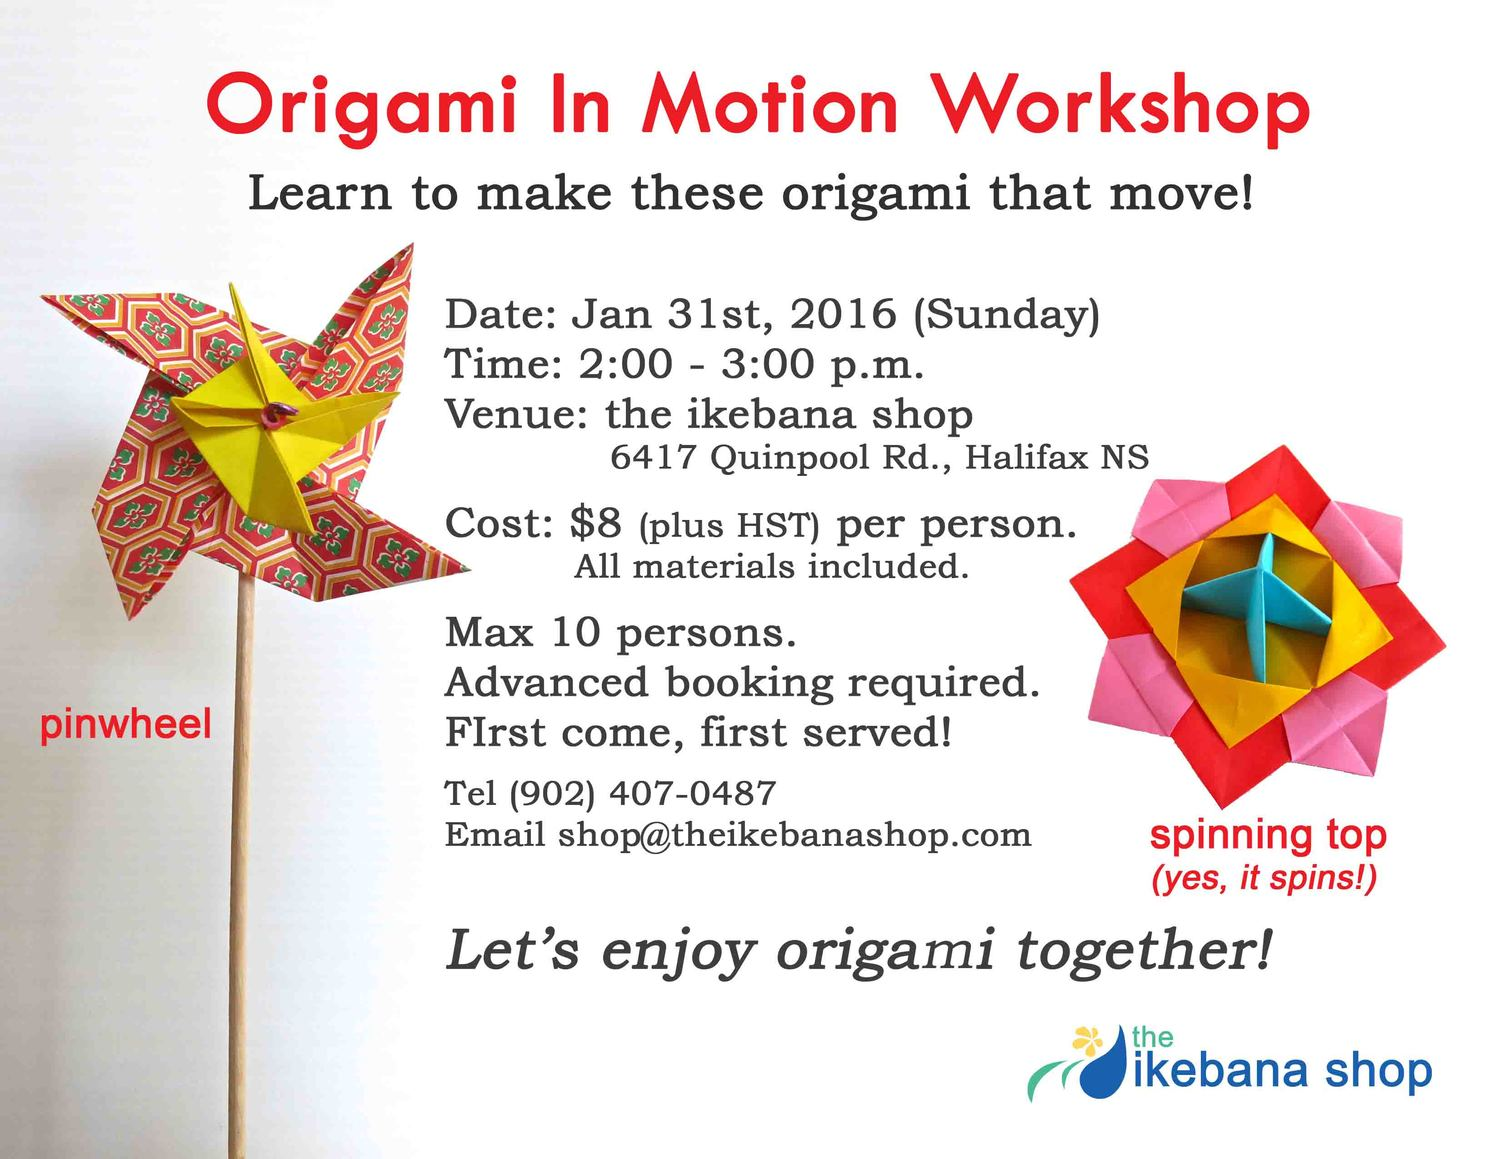 Origami in motion workshop the ikebana shop in this workshop we will make origami that go in motion one is a pinwheel that will spin when you blow on it and the other is a spinning top jeuxipadfo Images